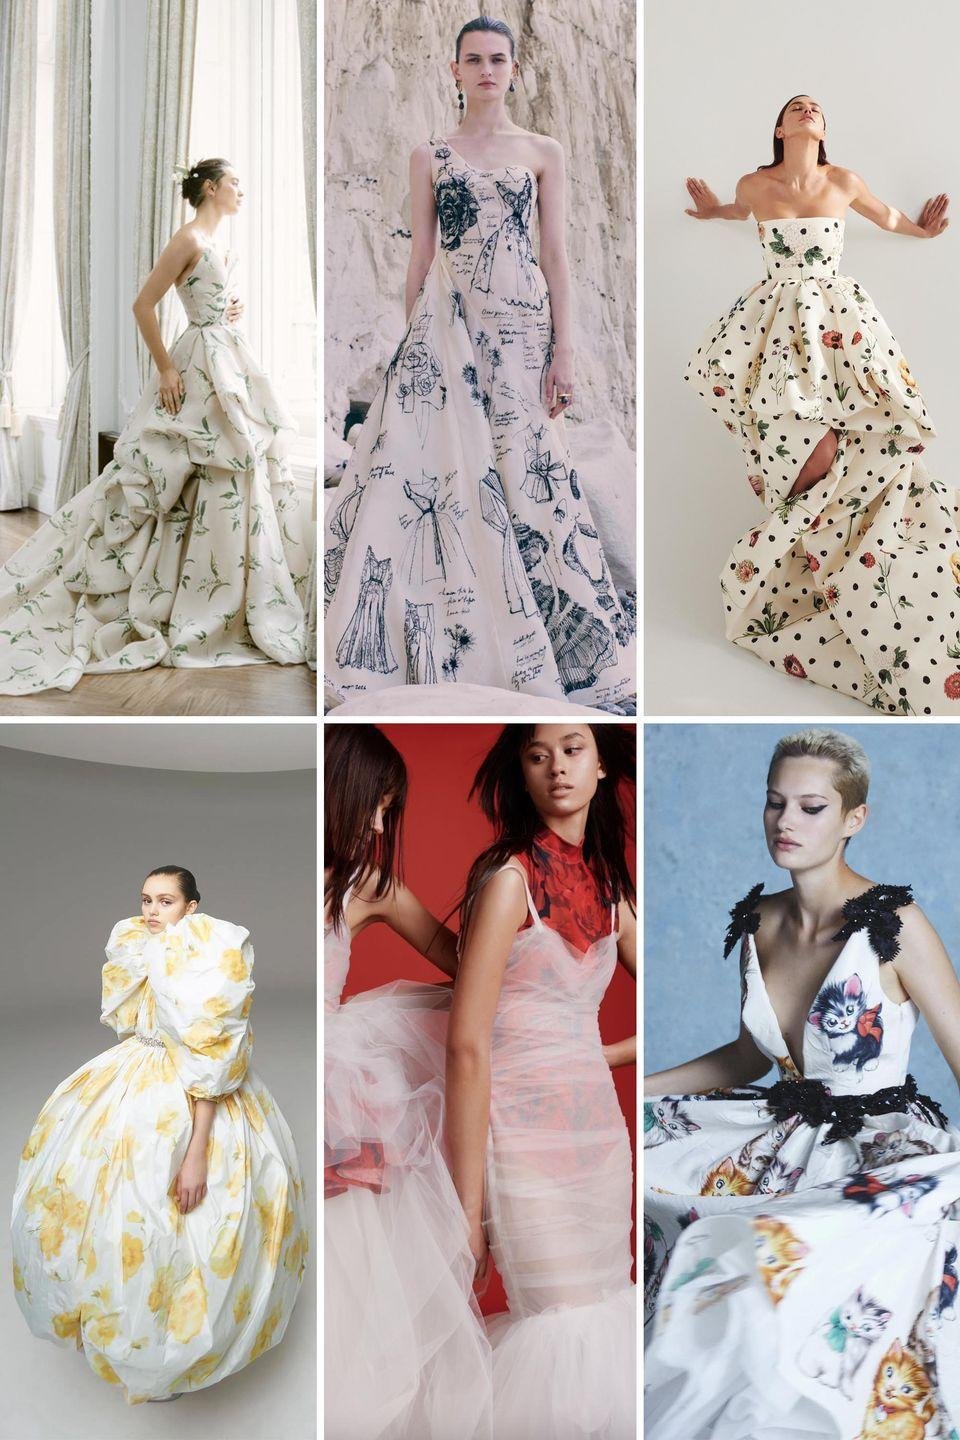 <p>This trend goes beyond florals and pops of color. Emerging from a year like 2020, 2021 is all about bold and playful prints that make us smile, done in chic new ways. Whether it be all-over graphic blooms or characterizing designs a la Monique Lhuillier's Lily of the Valley, Miu Miu's cat-c0vered gown, or Alexander McQueen's vintage fashion sketched frock, this is for the bride who plans to throw caution to the wind once stay at home orders are lifted and gatherings commence once more. </p><p>In short: you can have fun with fashion and play dress up, even for moments as epic as your ceremony. </p><p><em>Clockwise from left: Monique Lhuillier Bridal Fall 2021; Alexander McQueen Resort 2021; Oscar de la Renta Pre-Fall 2021; Giambattista Valli Spring 2020 Haute Couture; Vera Wang Fall 2021; Miu Miu Resort 2021.</em></p>